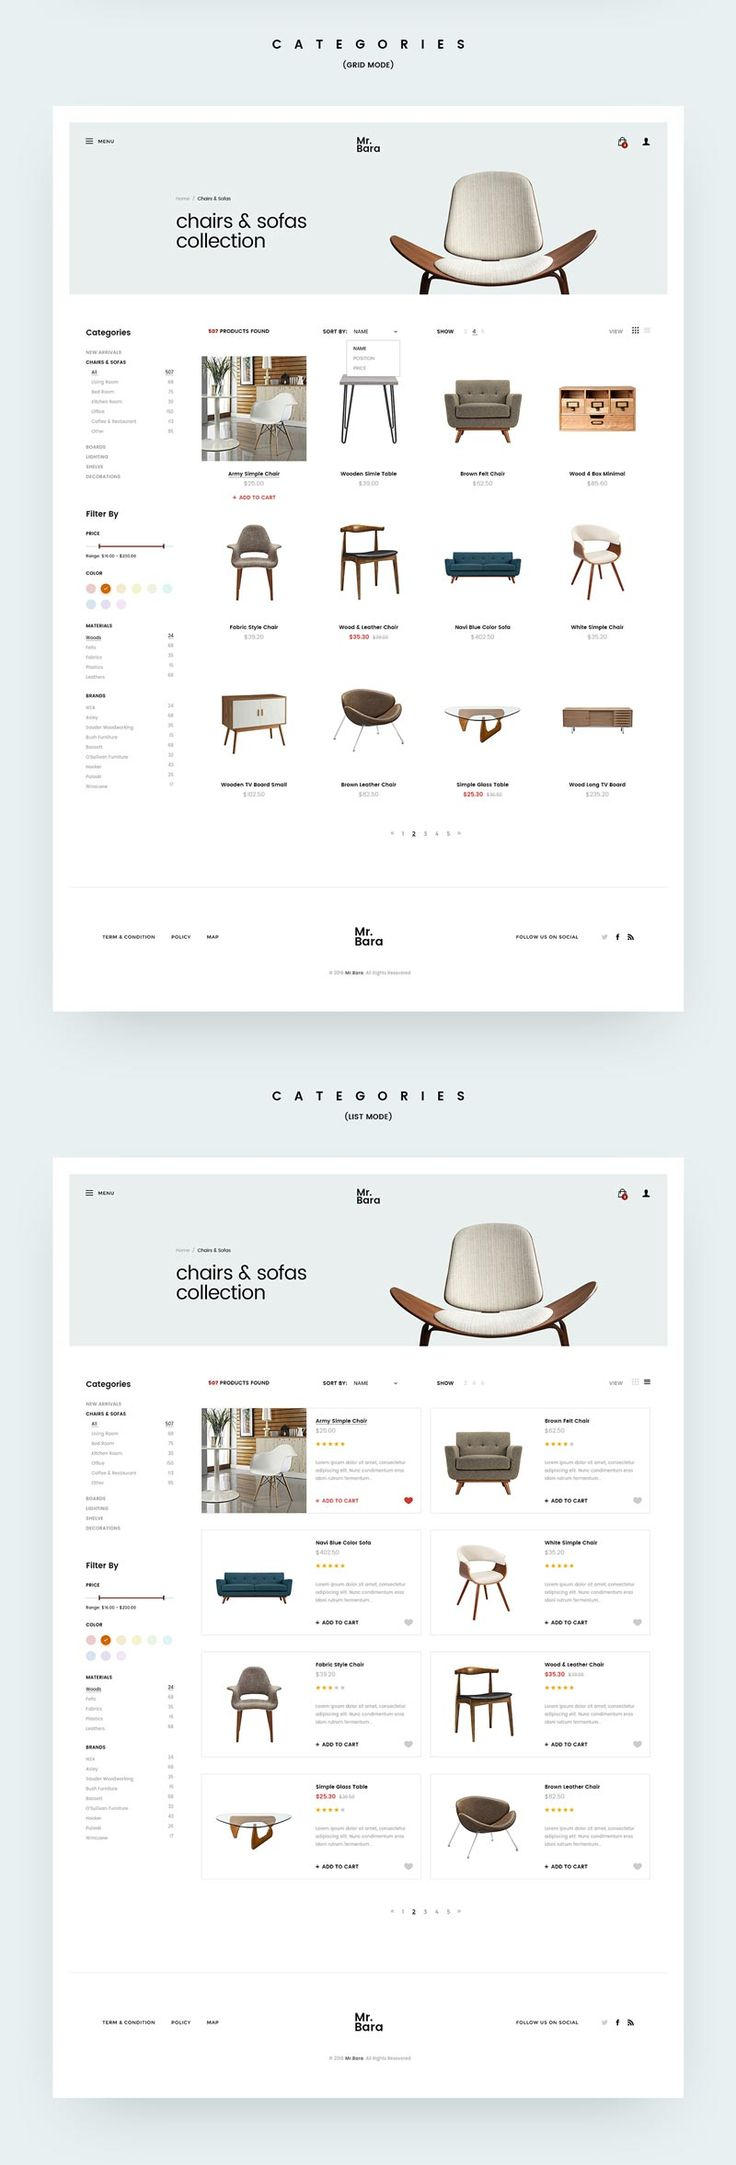 Mr-Bara Creative Wordpress Template - #ui #ux #userexperience #website #webdesign #design #minimal #minimalism #art